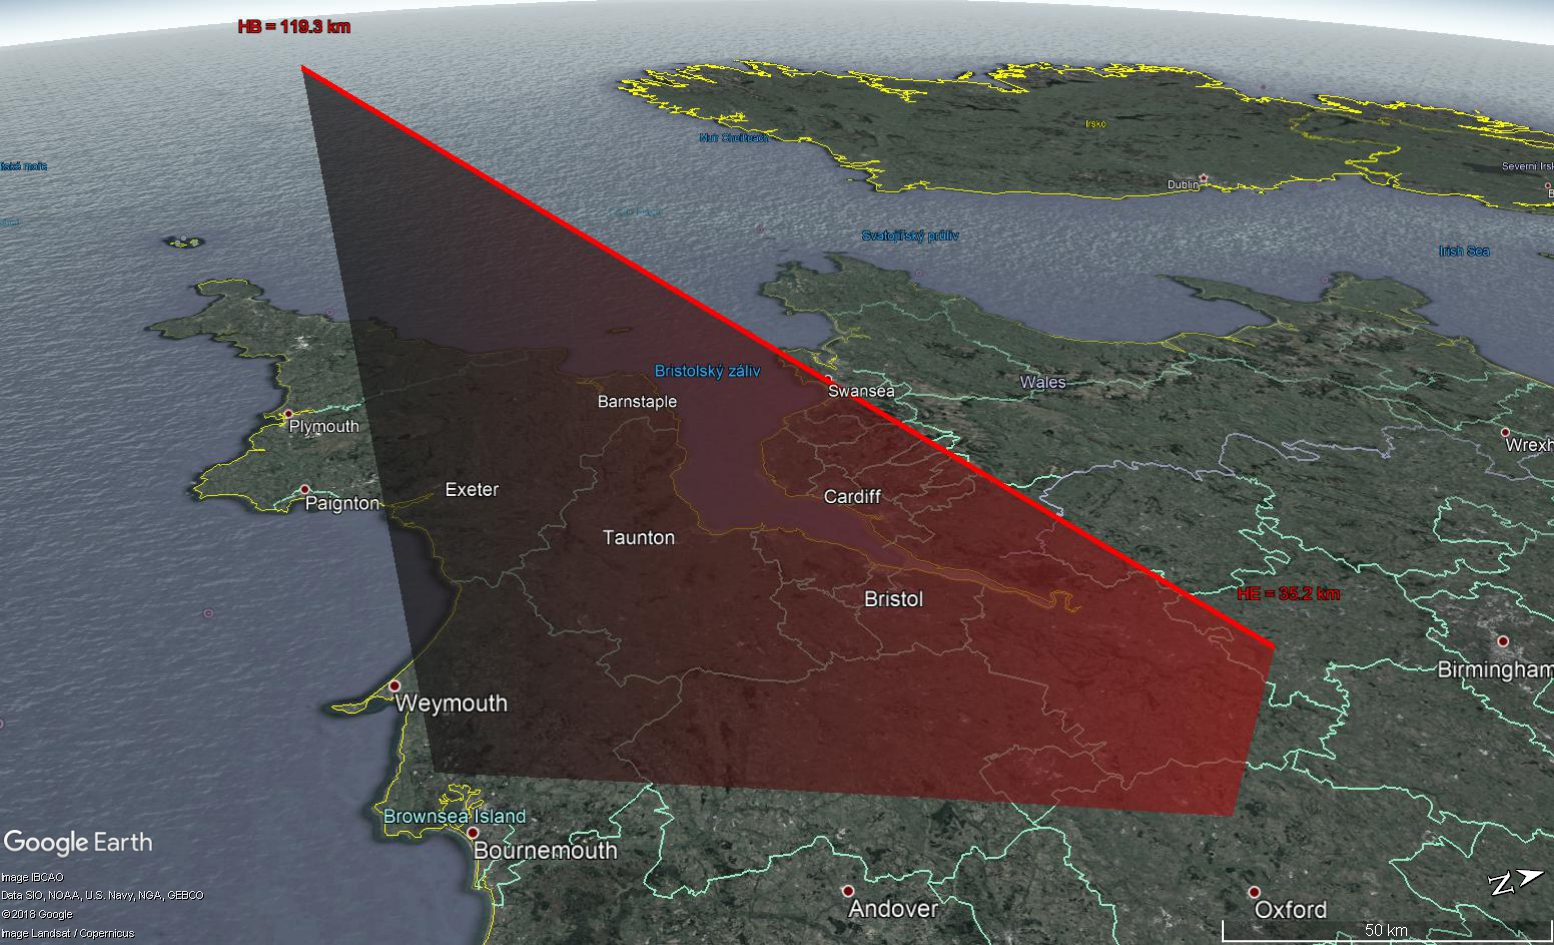 Fig. 3: 3D projection of the atmospheric path of the fireball 20160317_031654 on the Earth´s surface. Source of the map background: Google Earth, Google Inc.